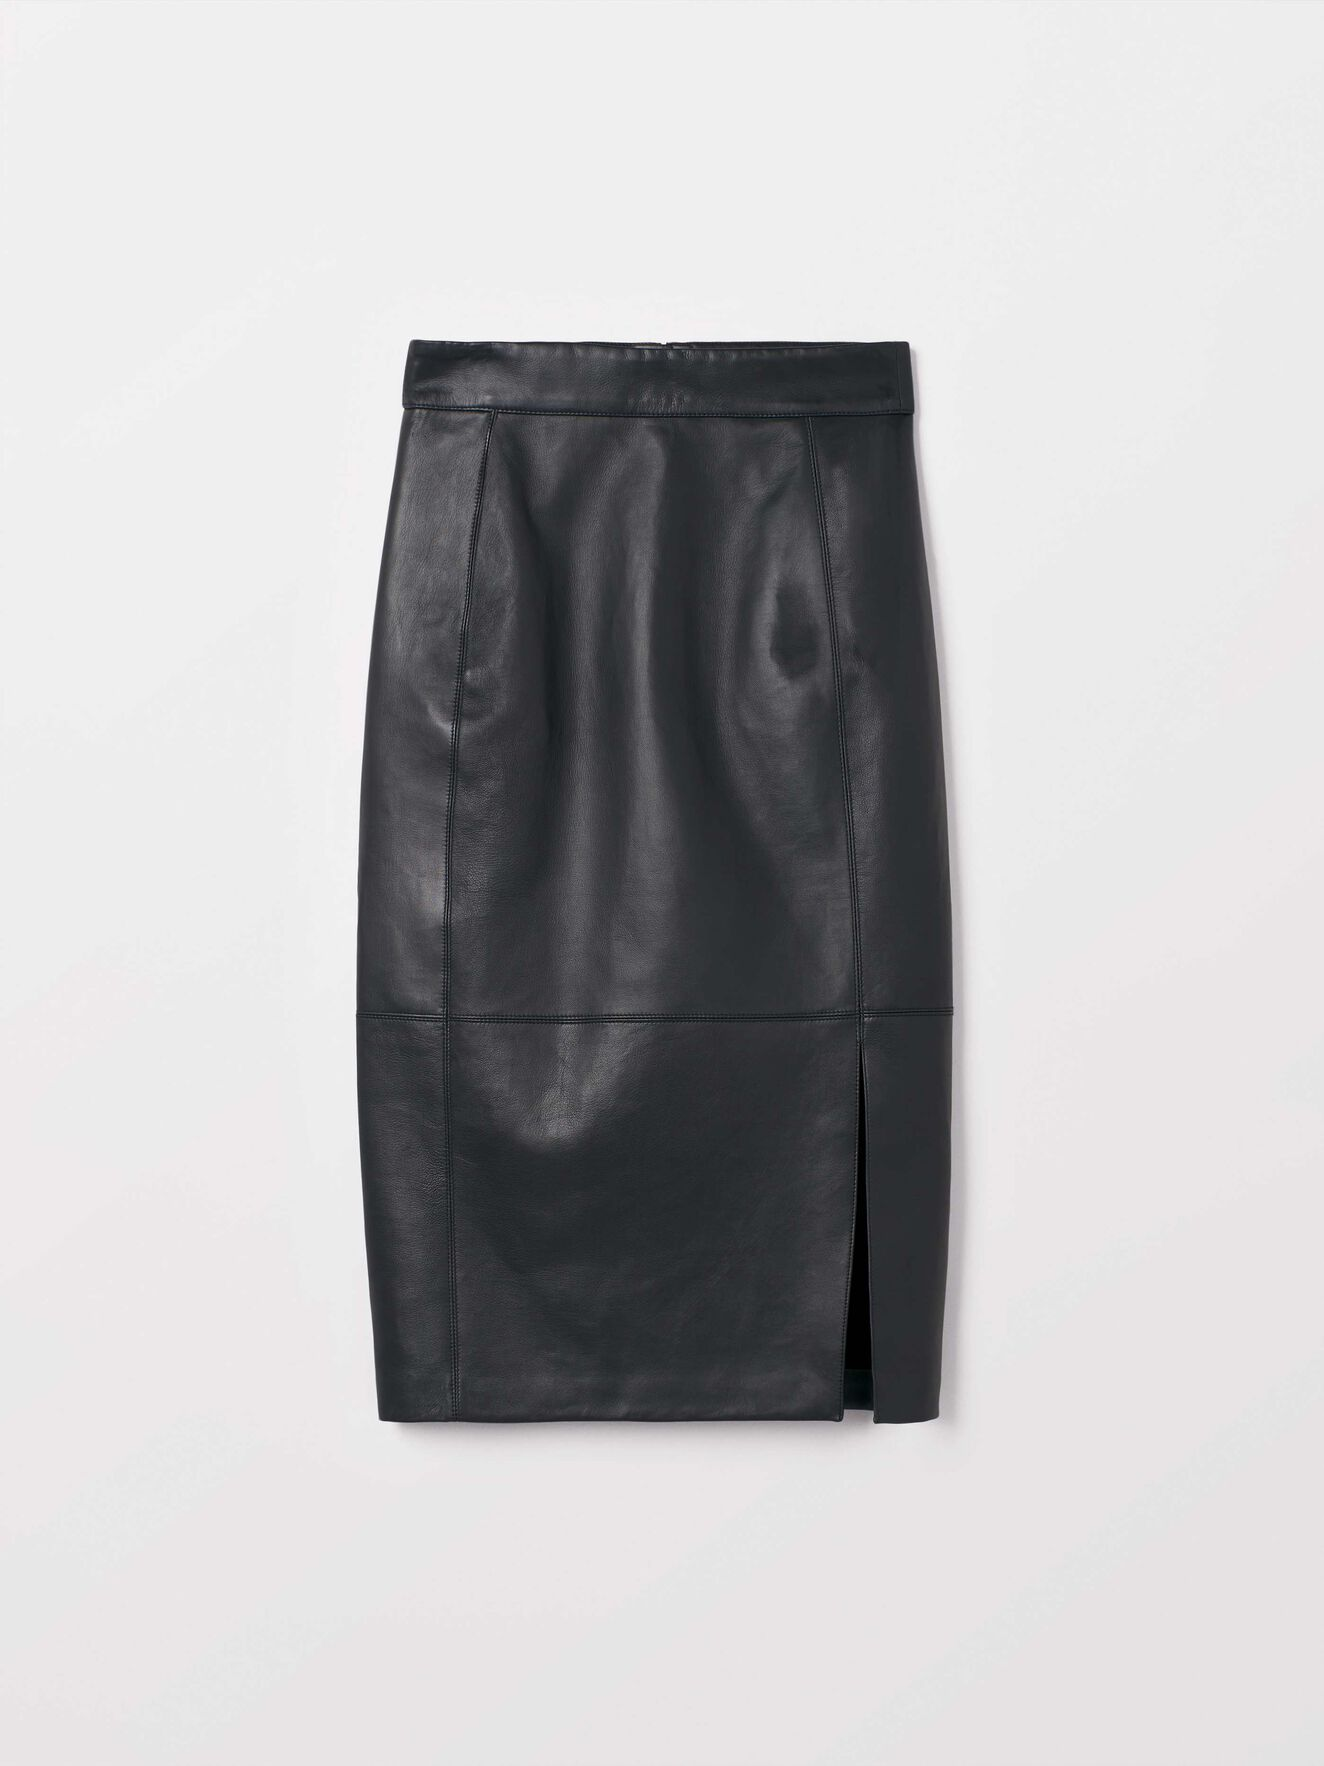 Ancille Skirt in Midnight Black from Tiger of Sweden